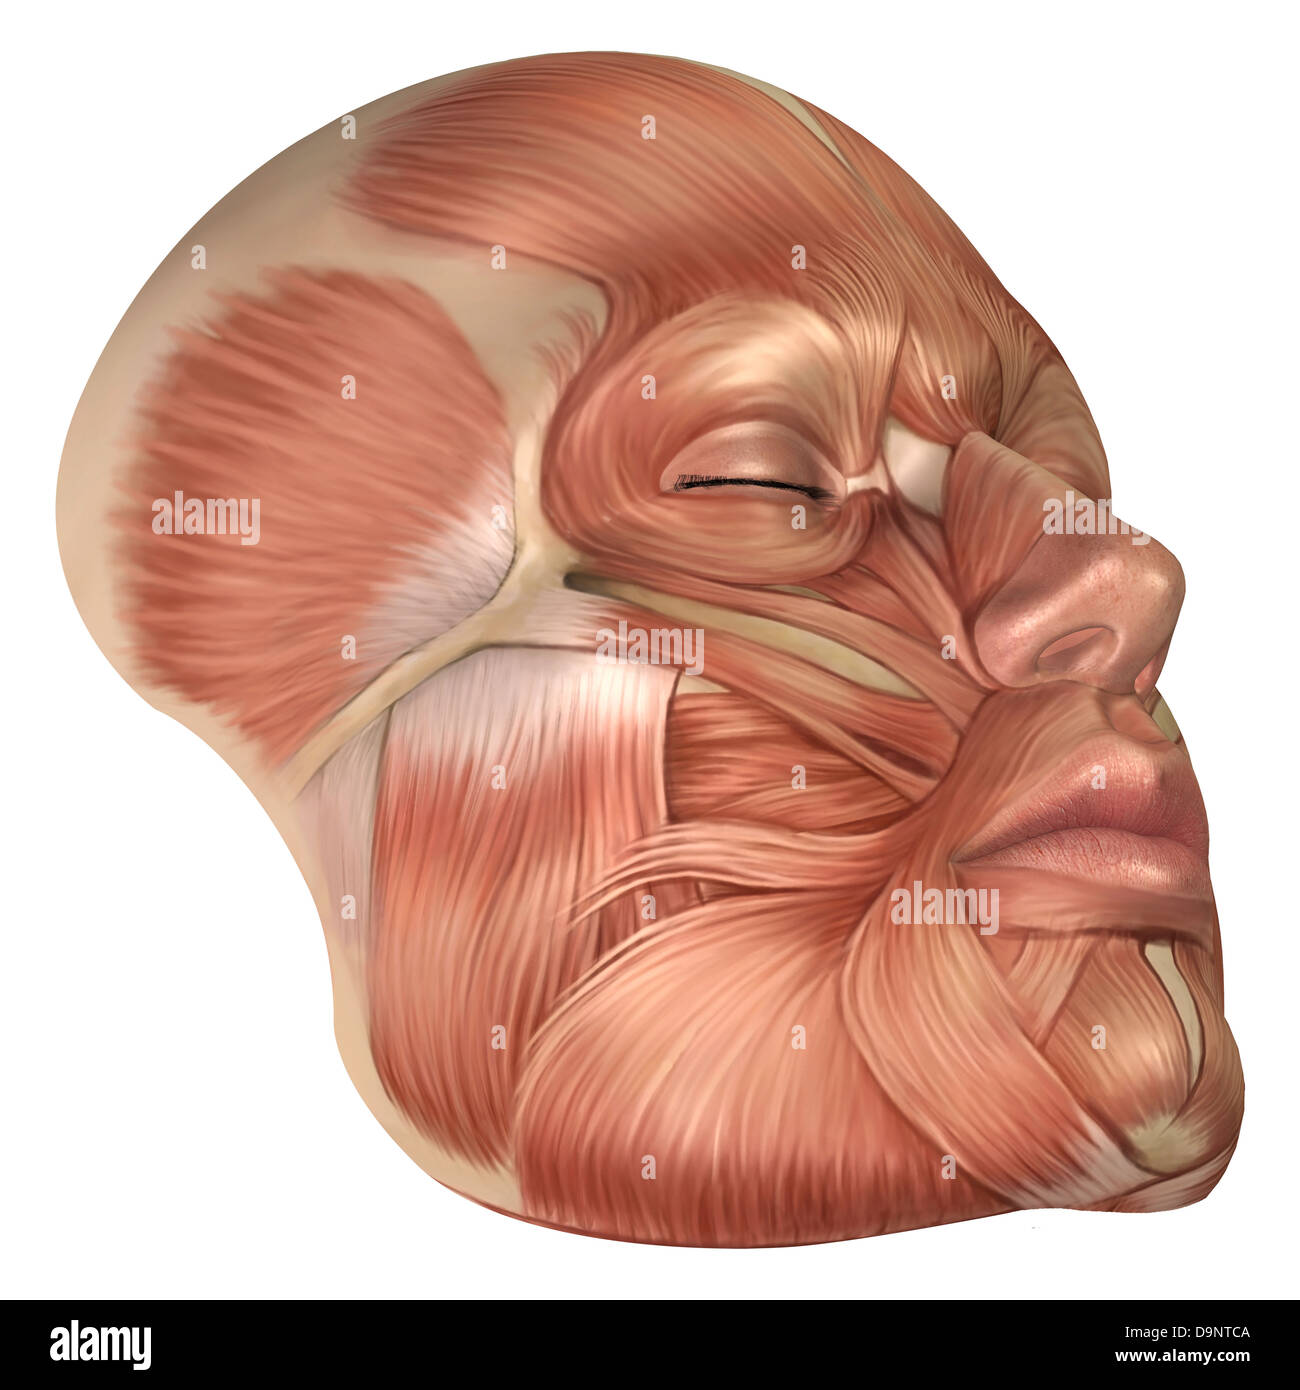 chin muscles diagram model railroad wiring diagrams anatomy of human face stock photo 57643162 alamy